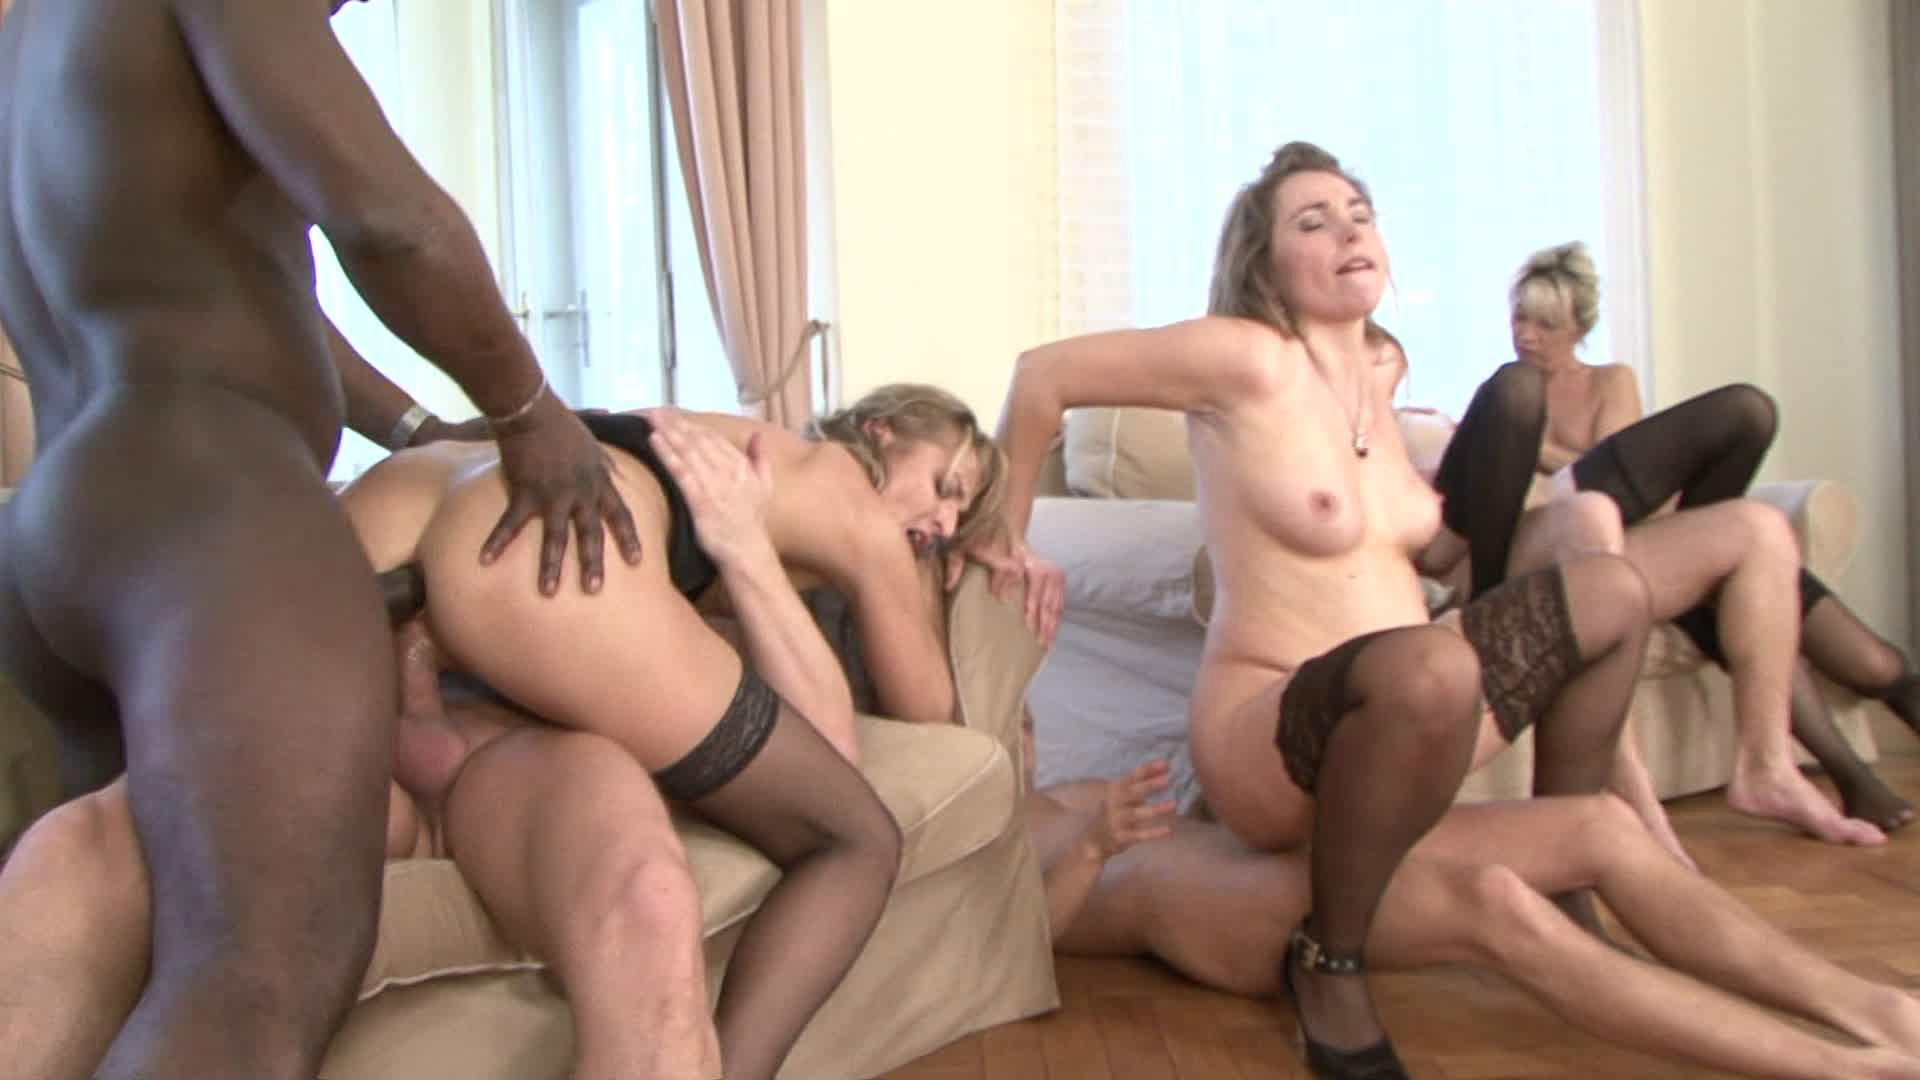 All out fuckfest group sex at its best 3